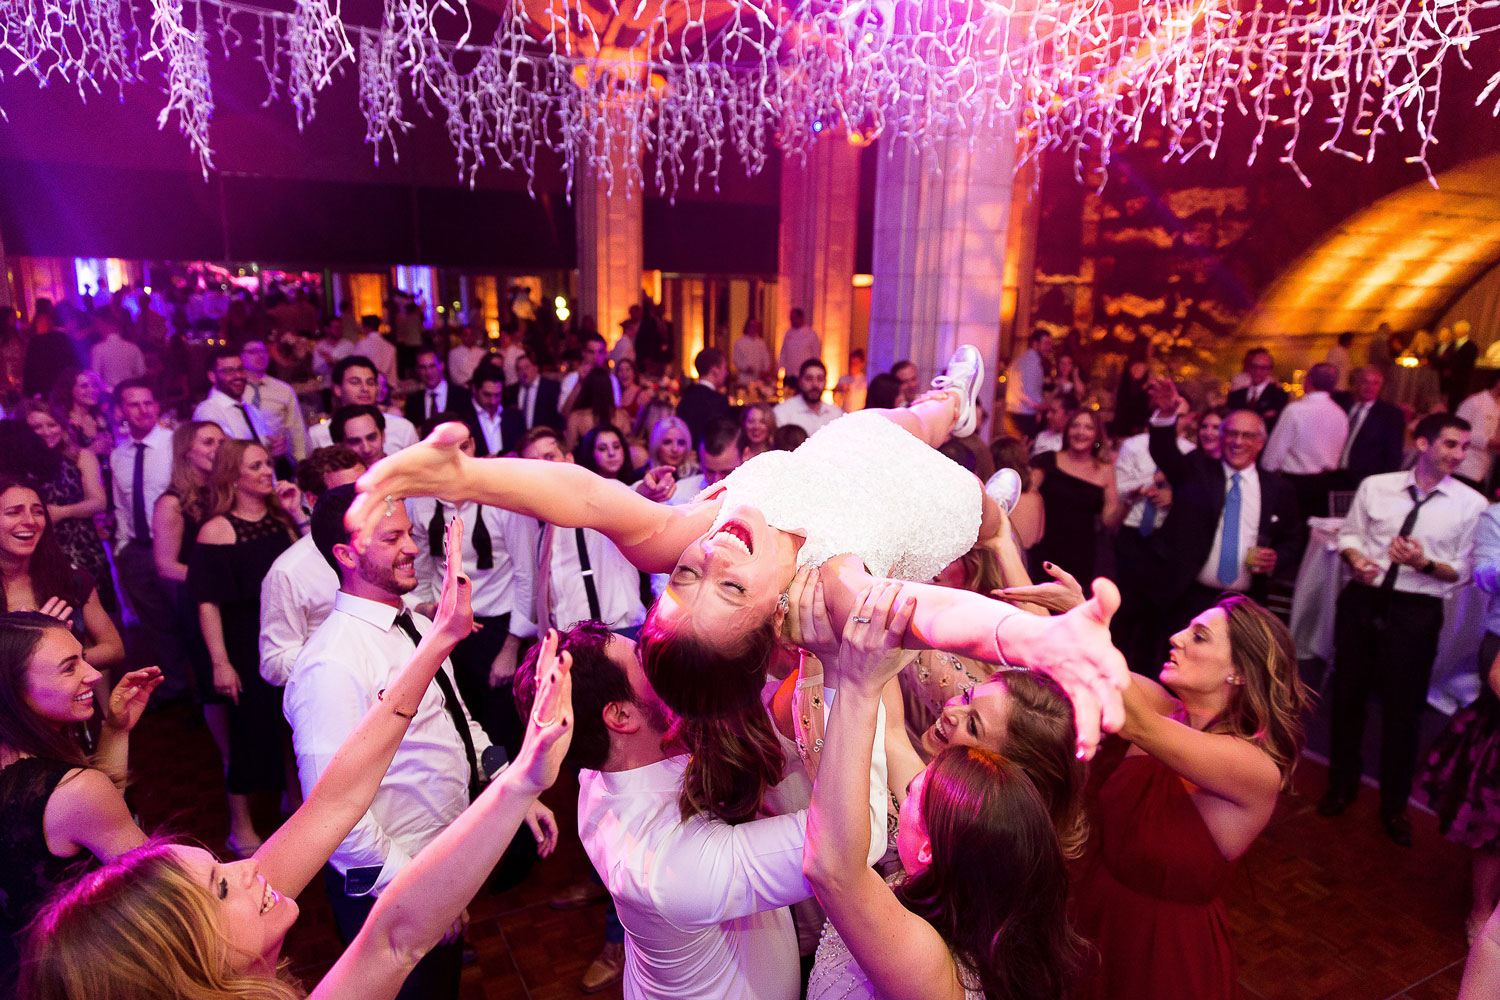 siriusxm wedding party, music to play at your wedding